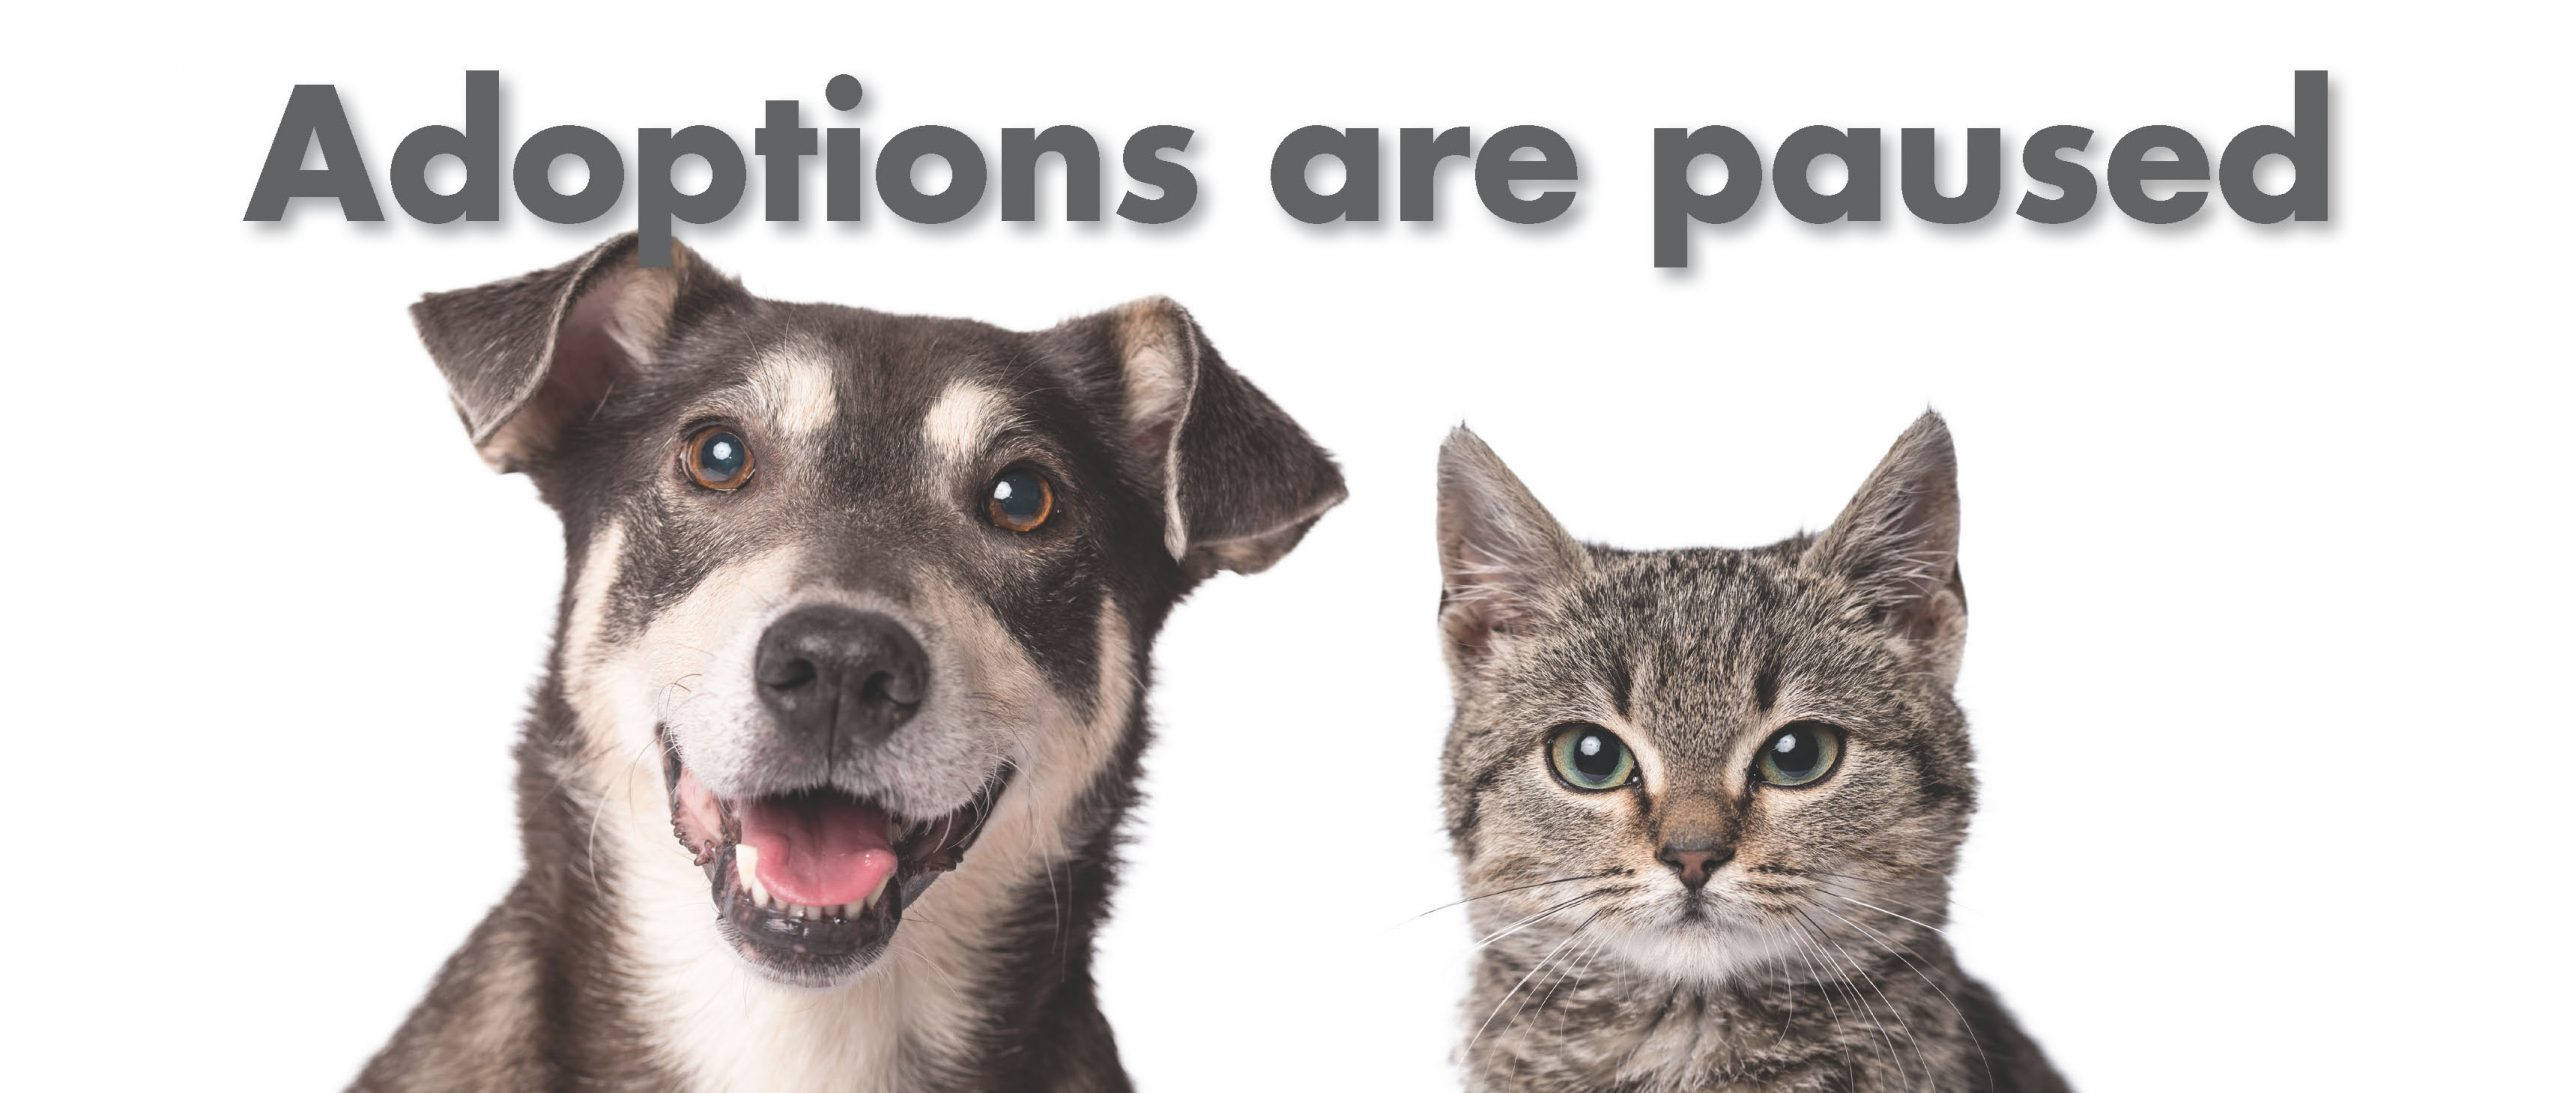 Adoptions Currently on Hold